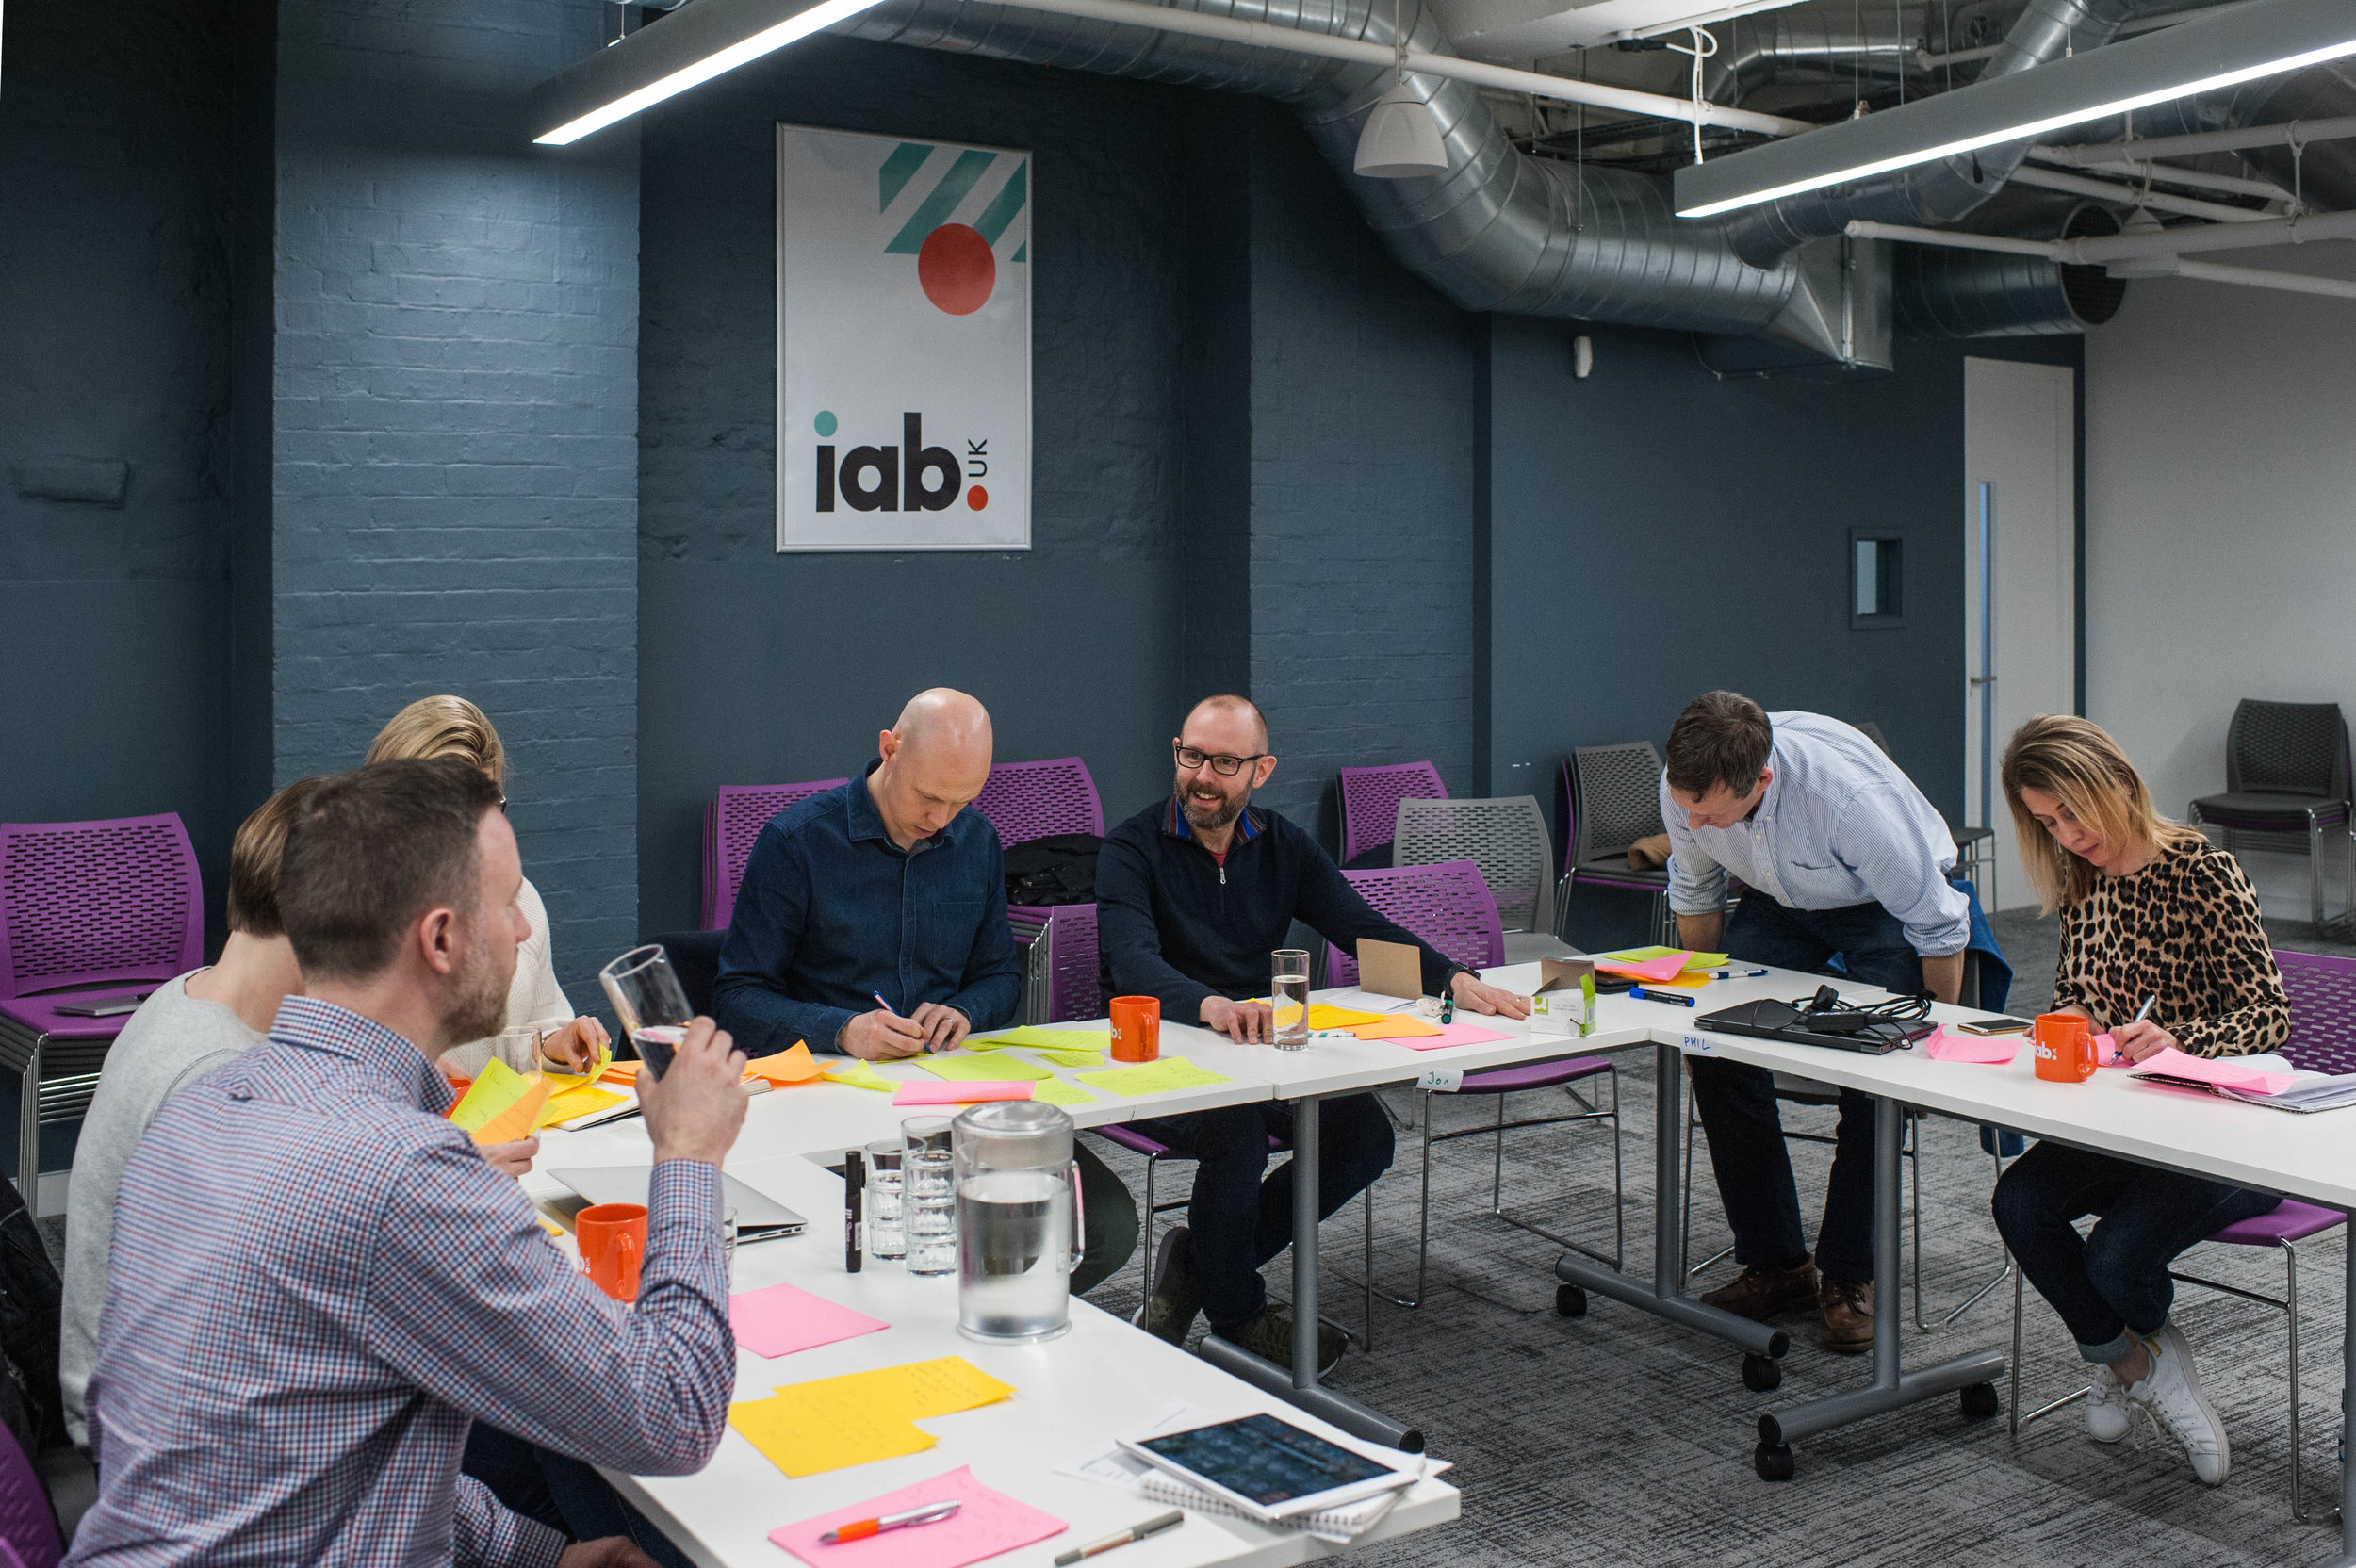 IAB Uk_Incidental Shots_SM (177 of 312).jpg